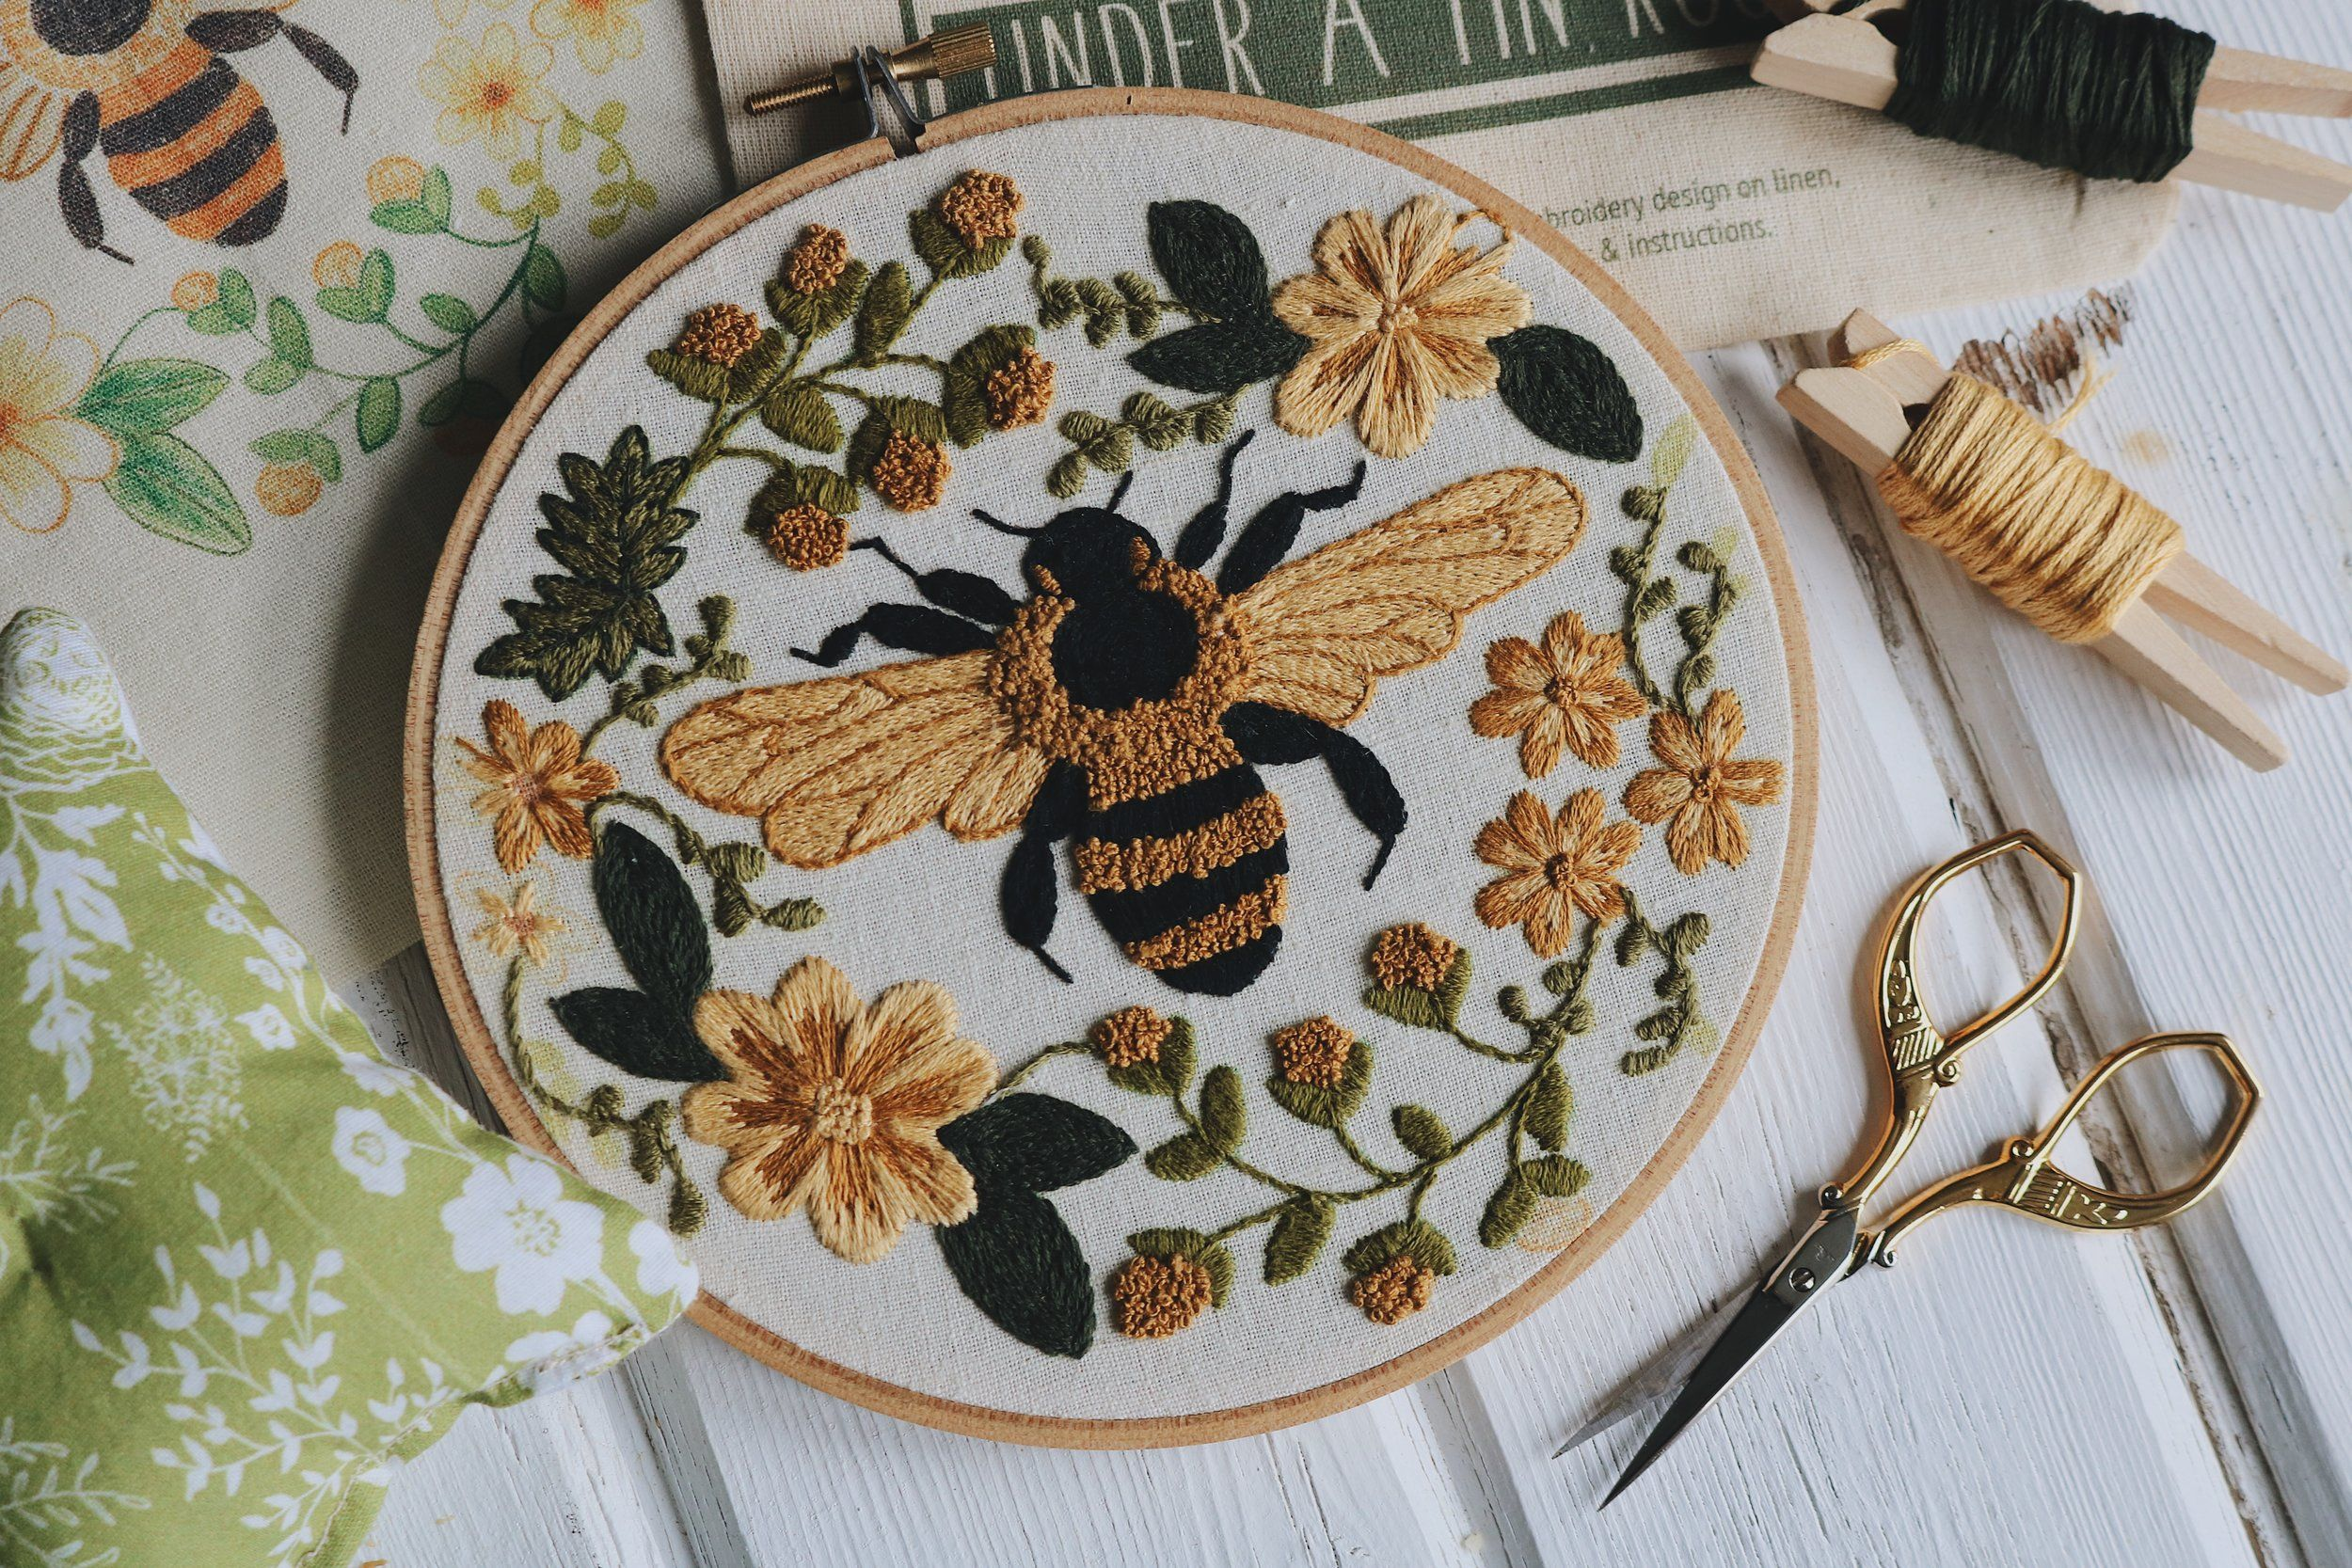 Sweet Honey Bee Digital Embroidery Pattern  — Under A Tin Roof™ #embrodery